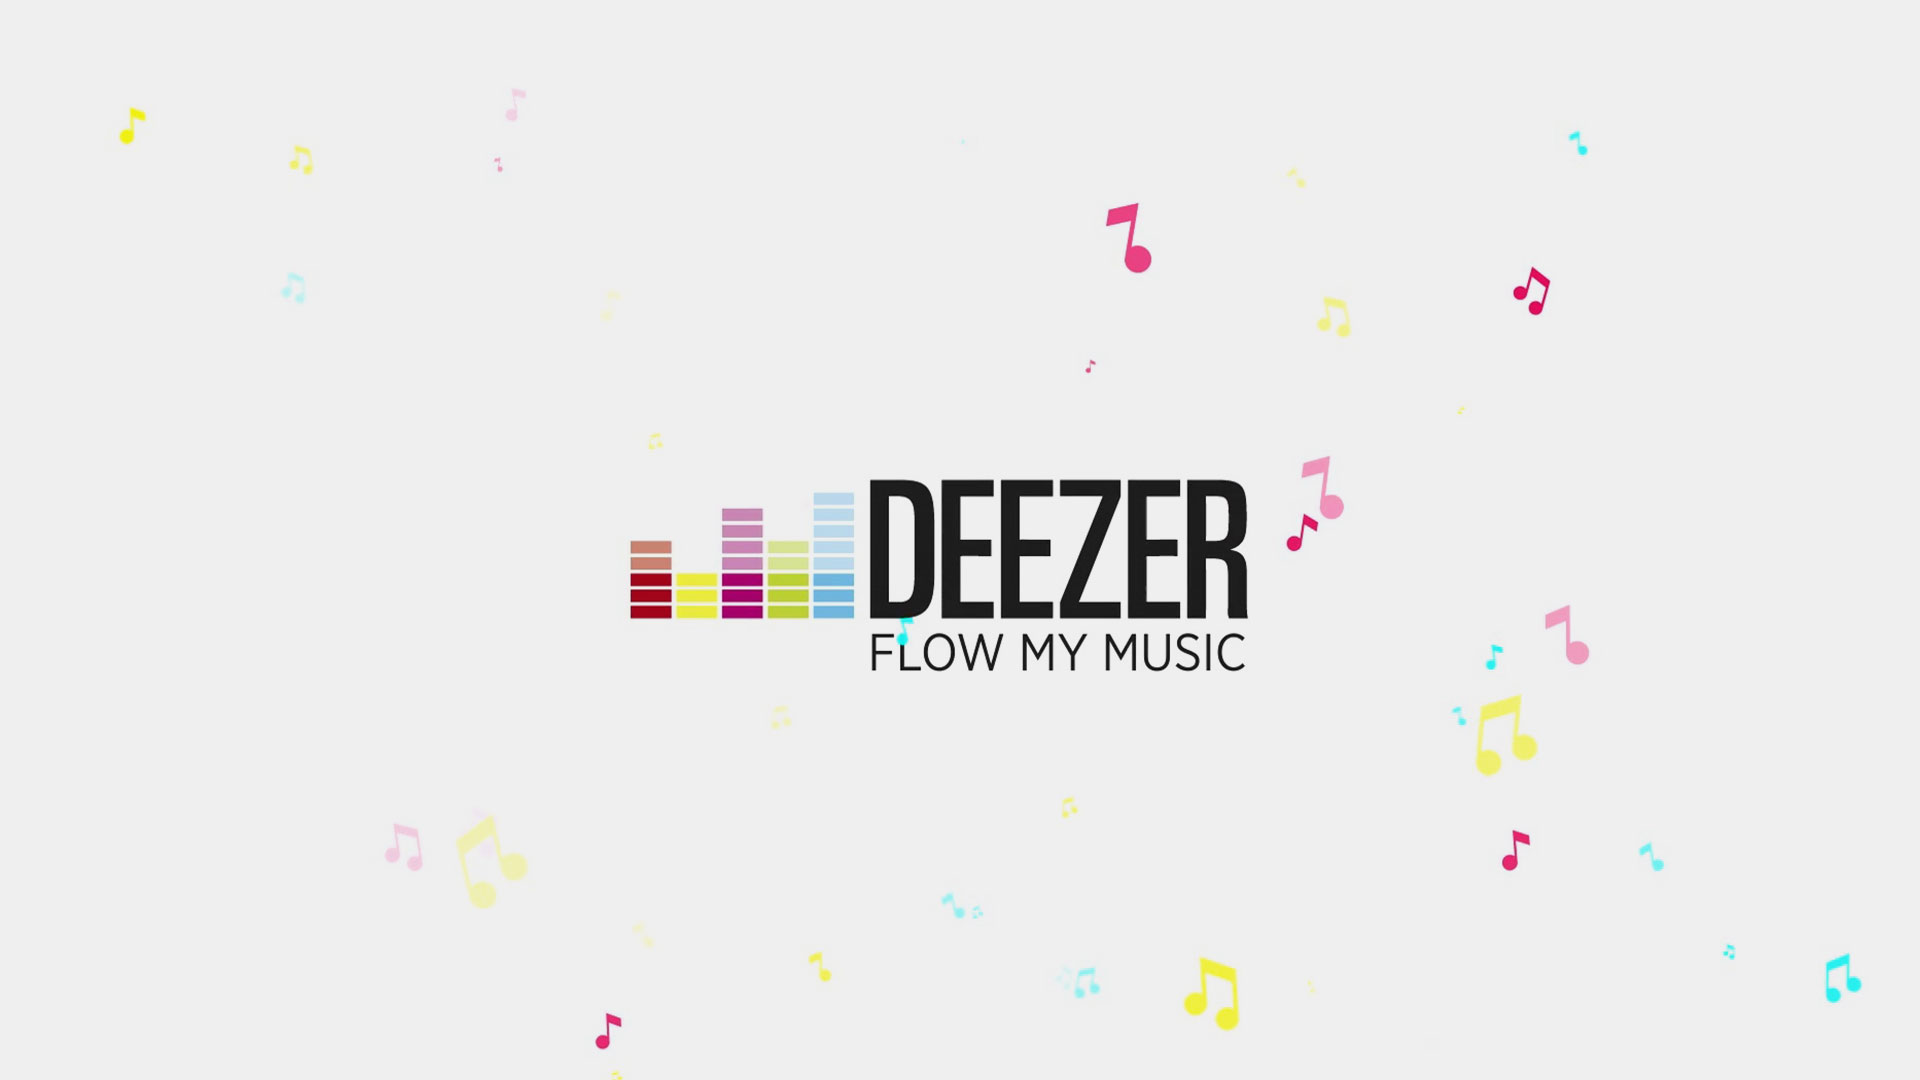 Deezer Motion design